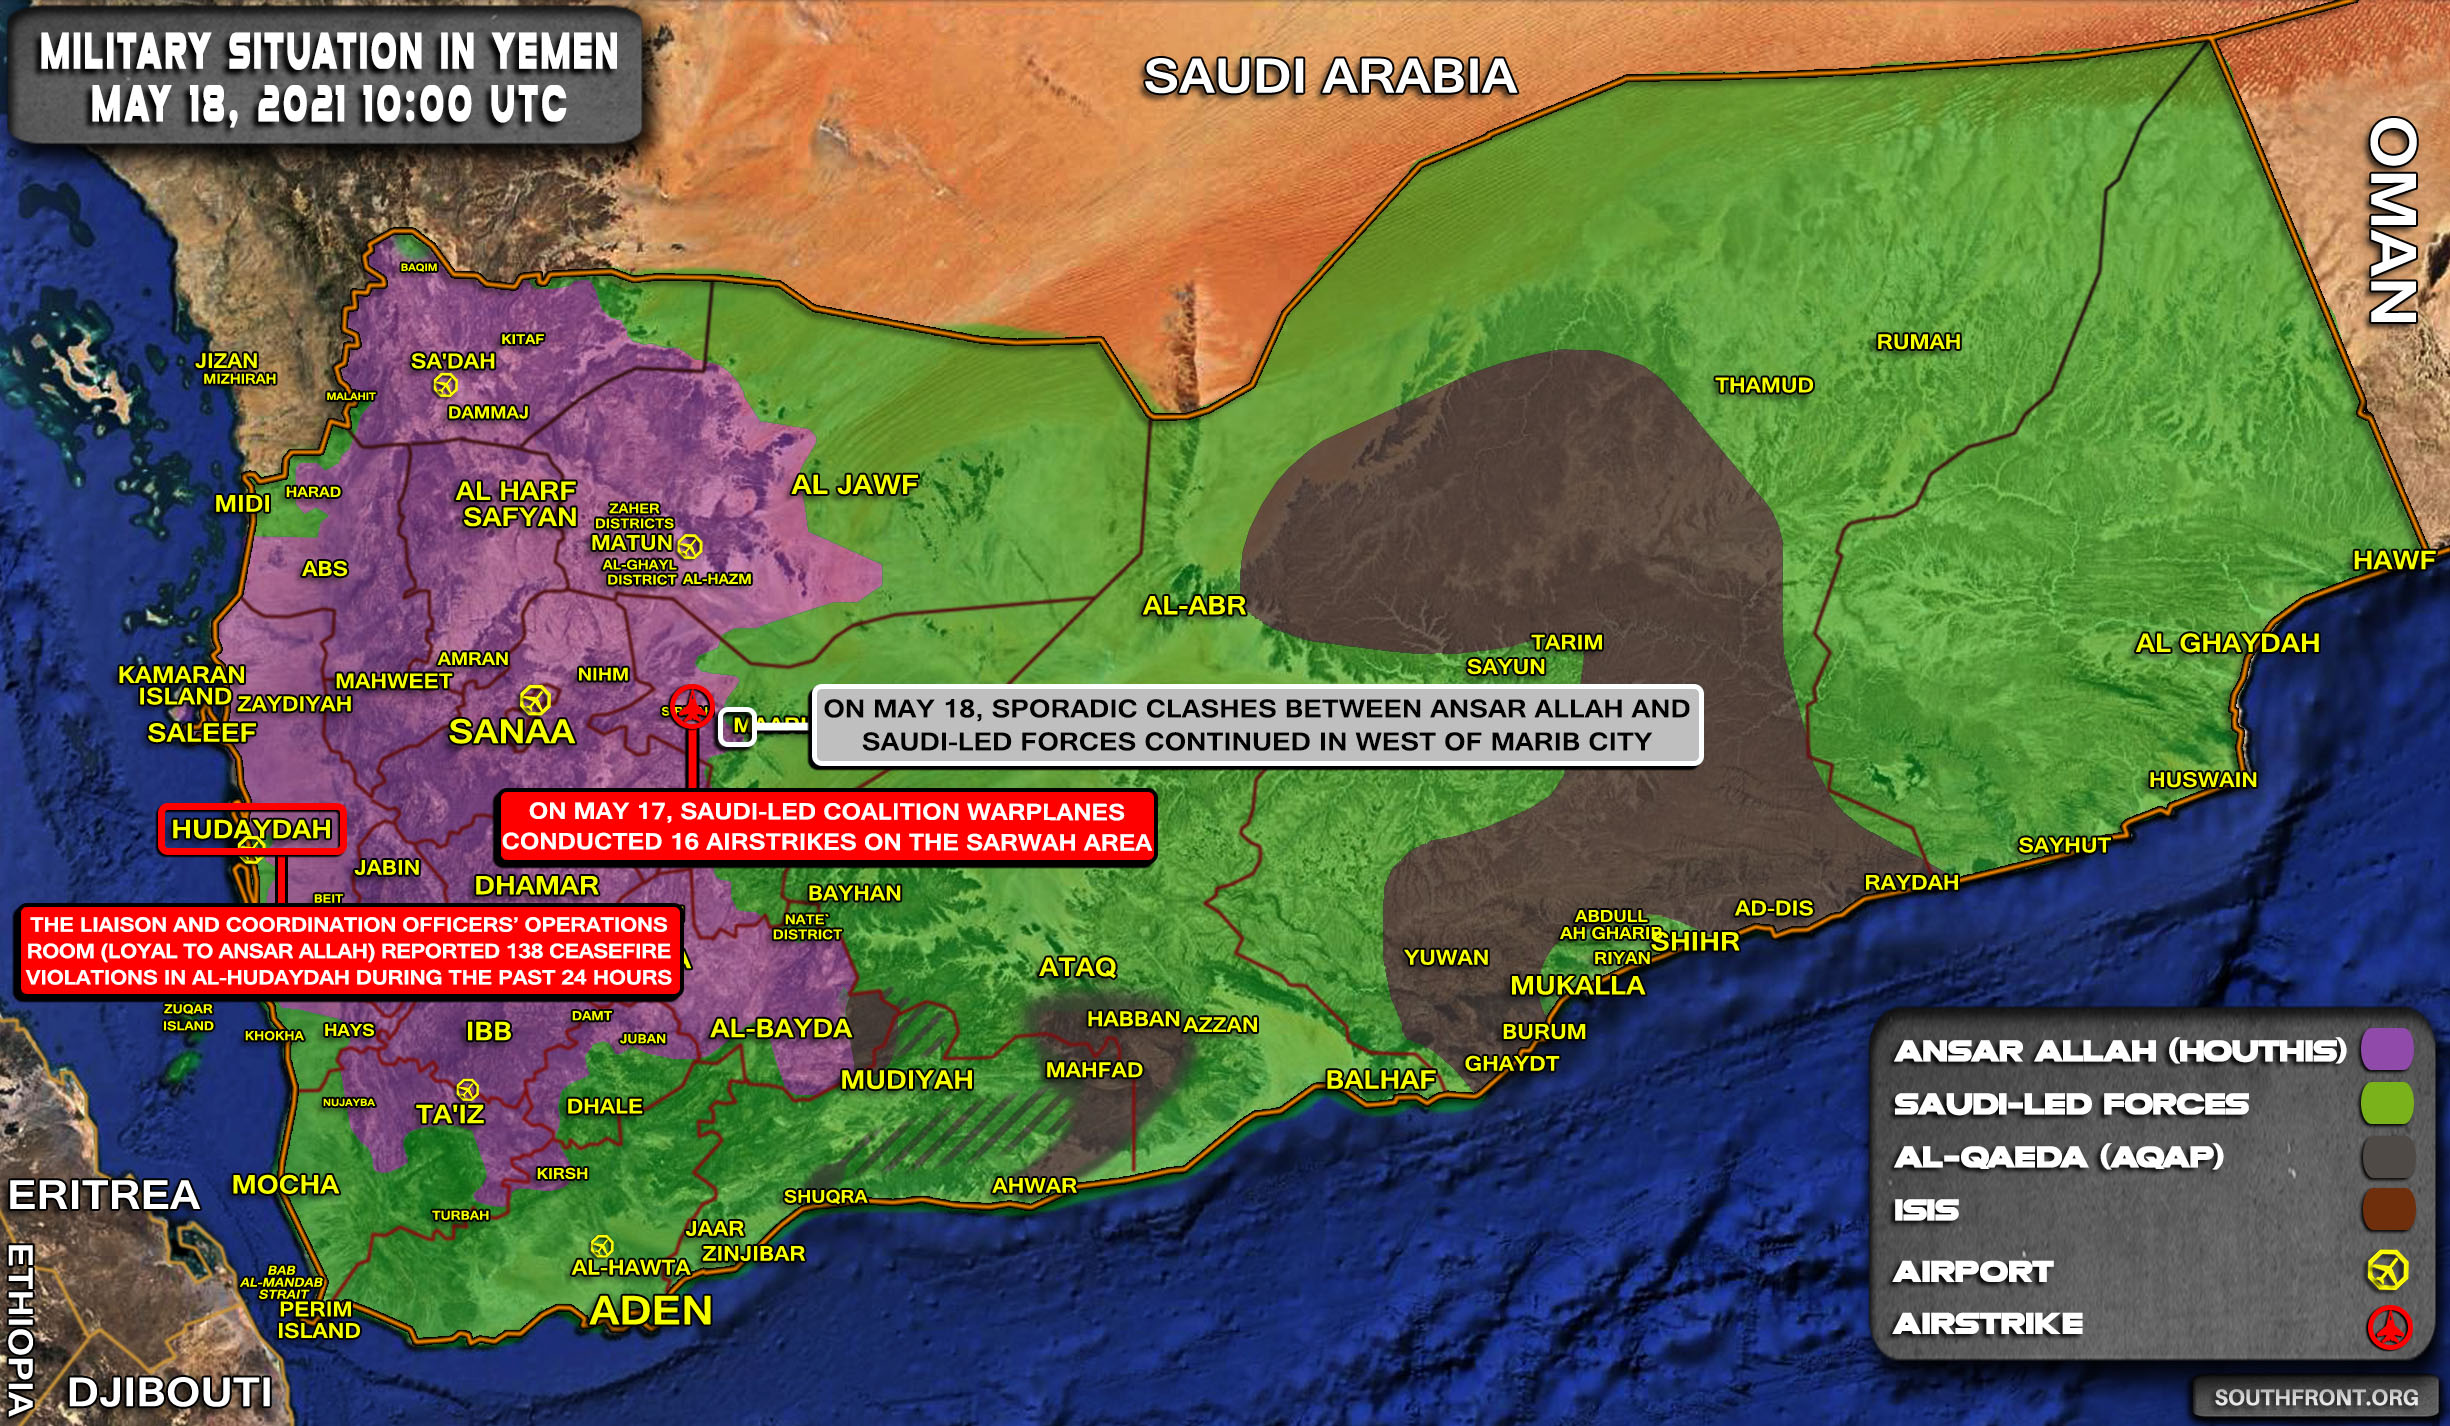 Military Situation In Yemen On May 18, 2021 (Map Update)